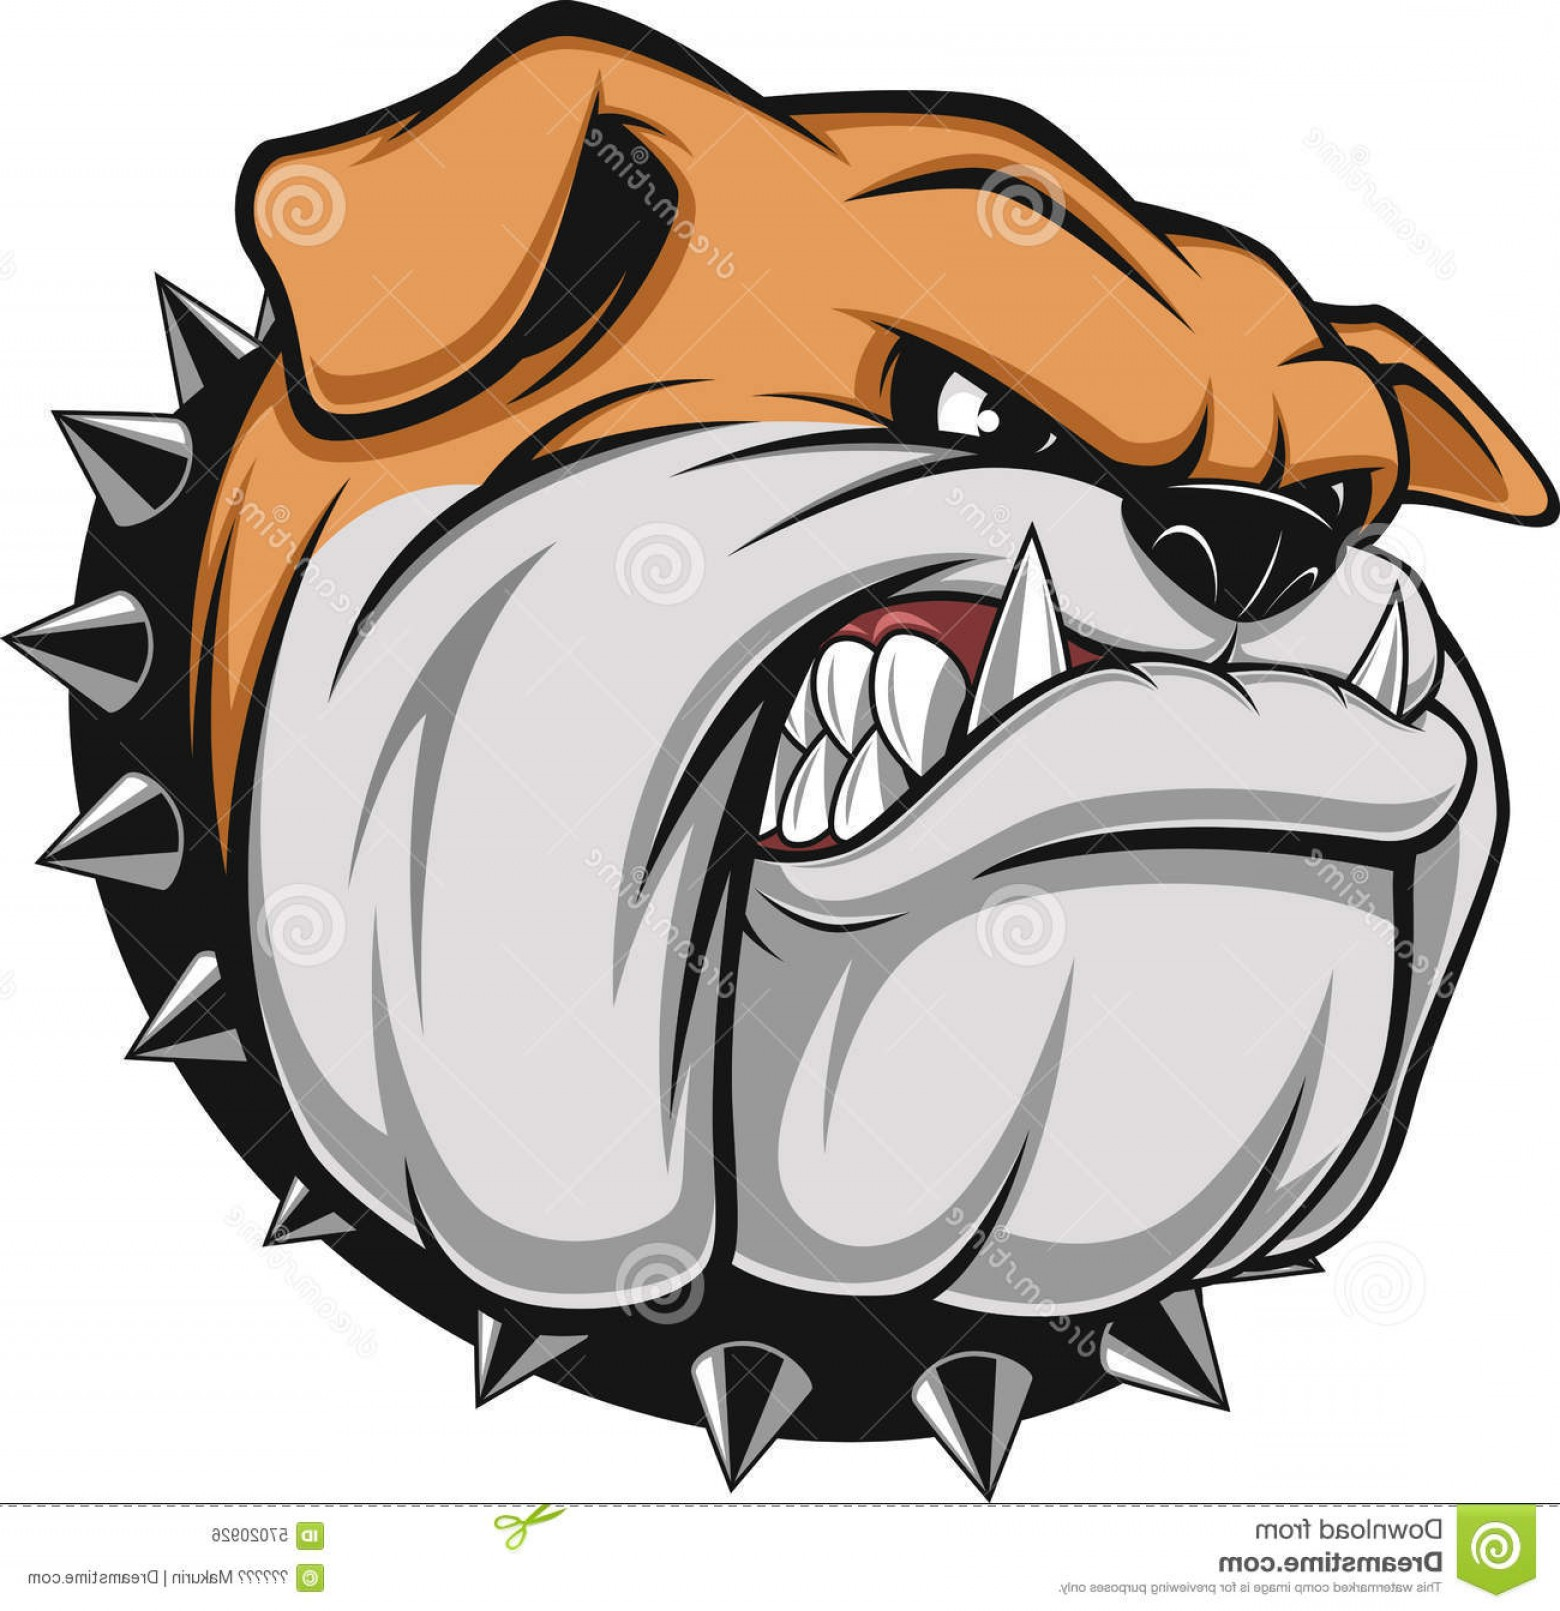 Dog Mascot Vector: Stock Illustration Angry Dog Vector Illustration Bulldog Mascot Head White Background Image